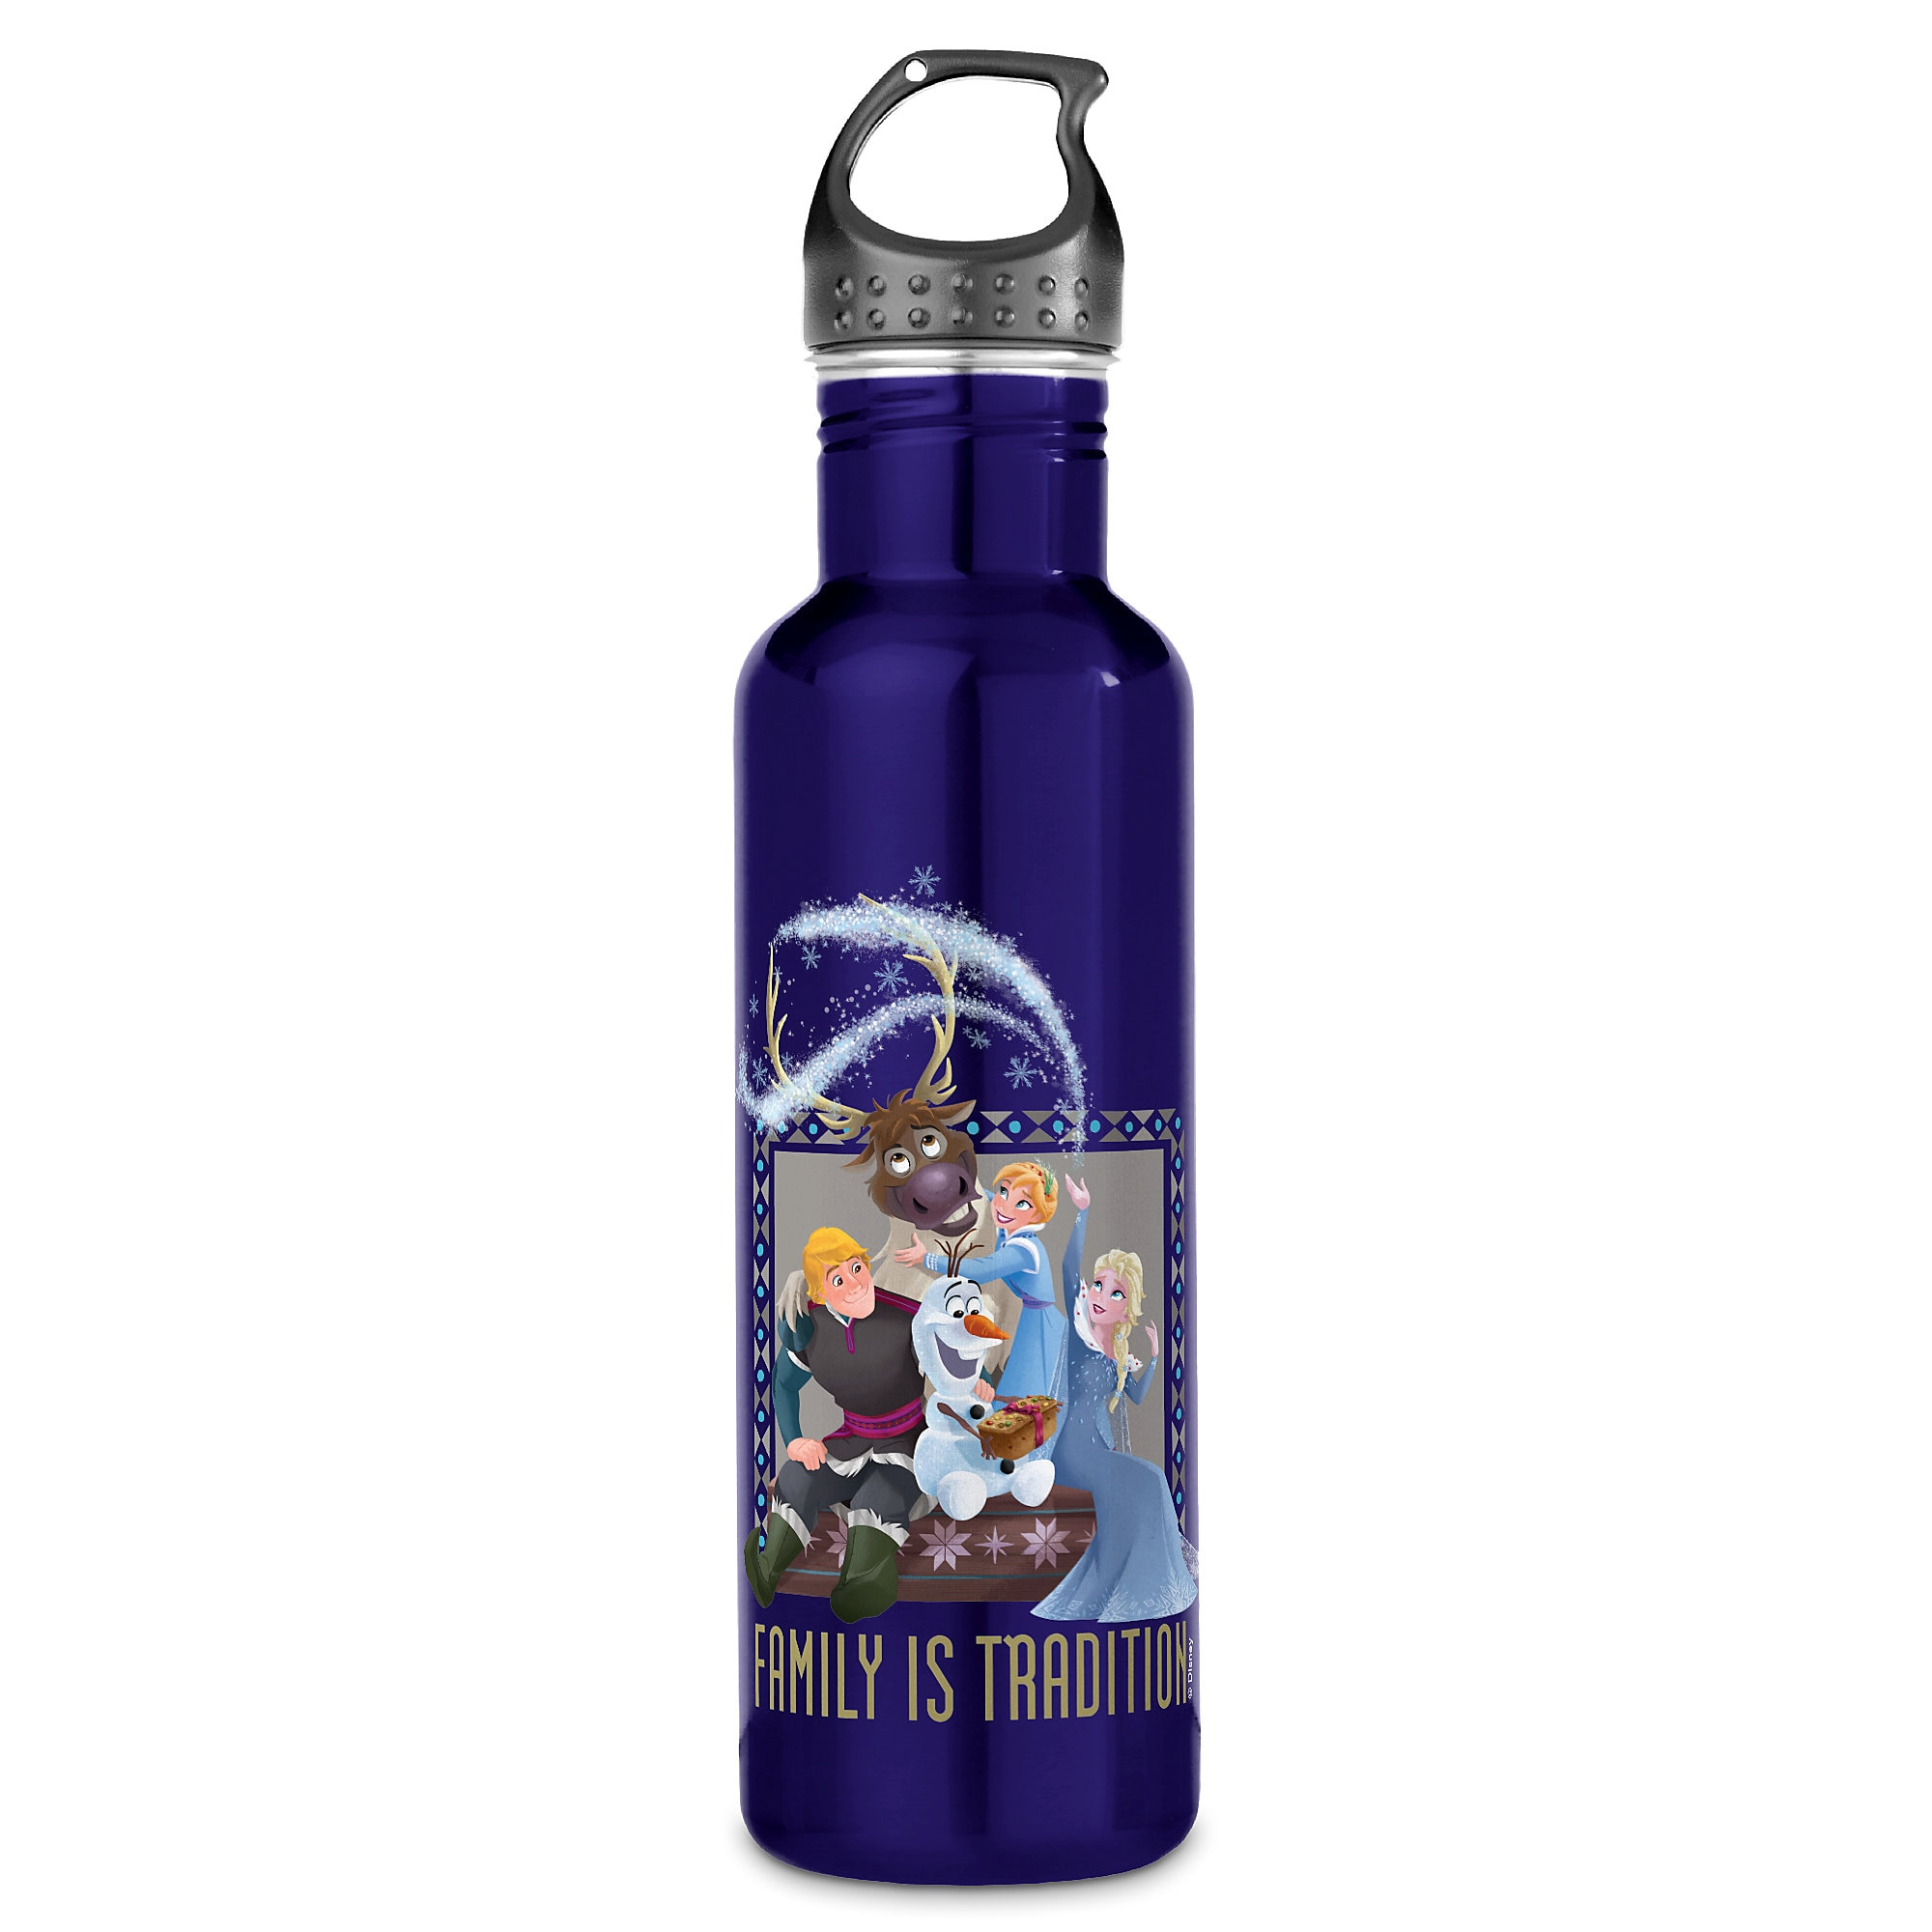 Olaf's Frozen Adventure Family is Tradition Water Bottle - Customizable